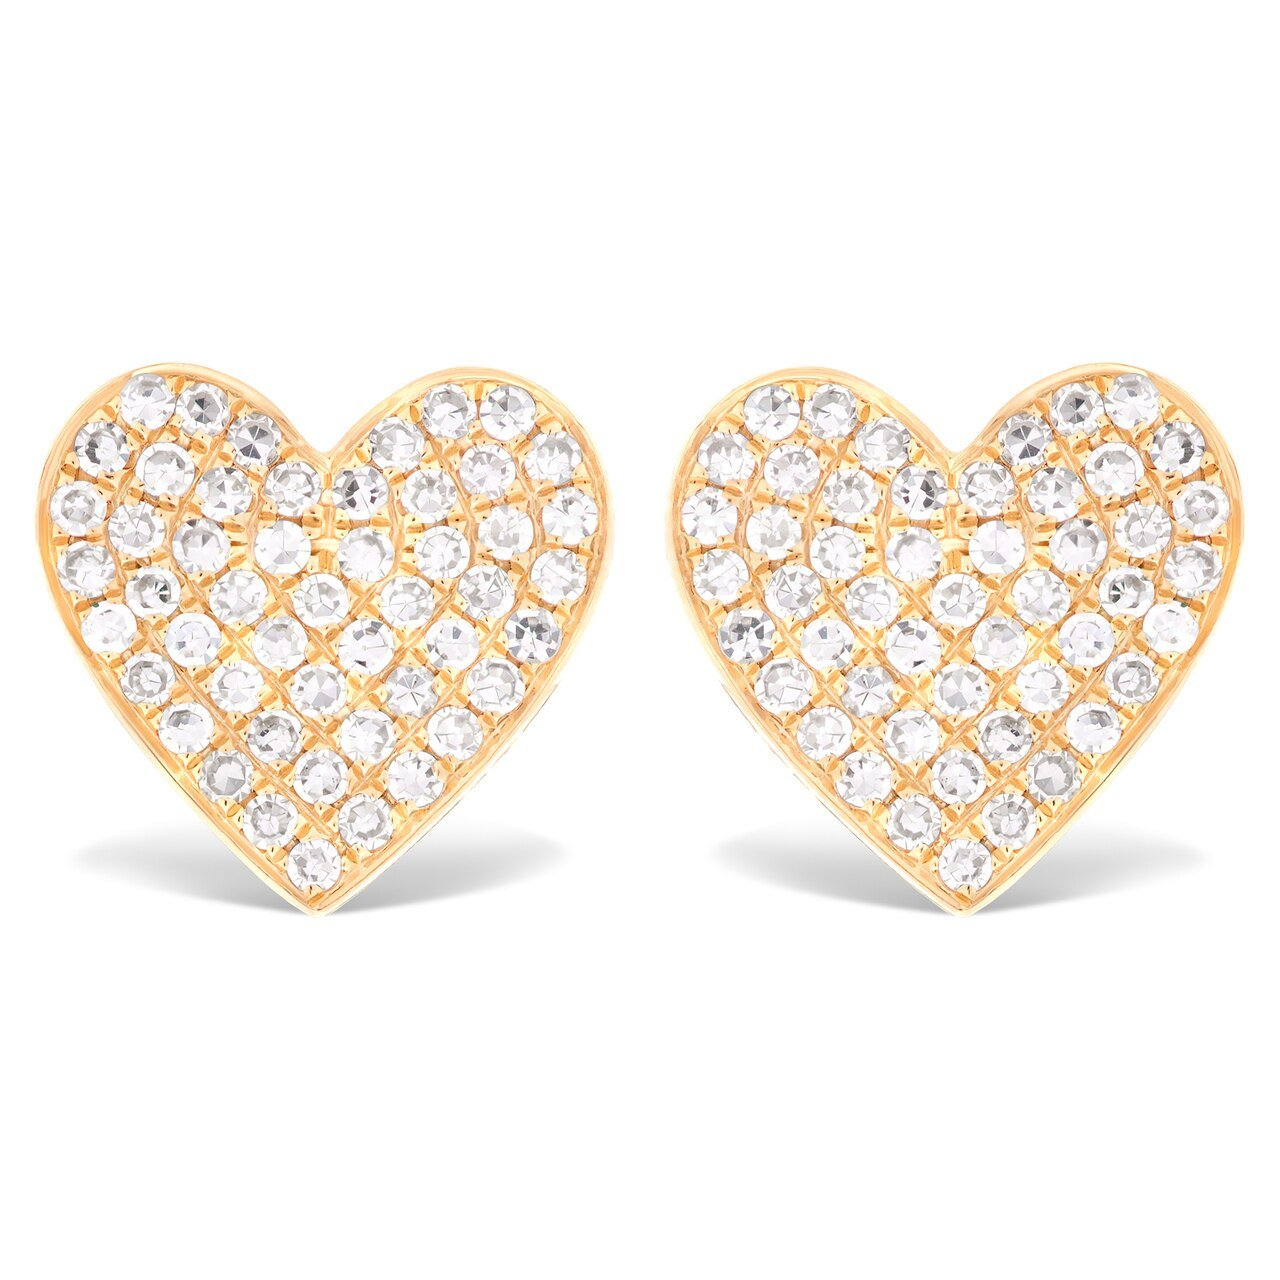 Medium Size Pave Diamond Heart Stud Earrings